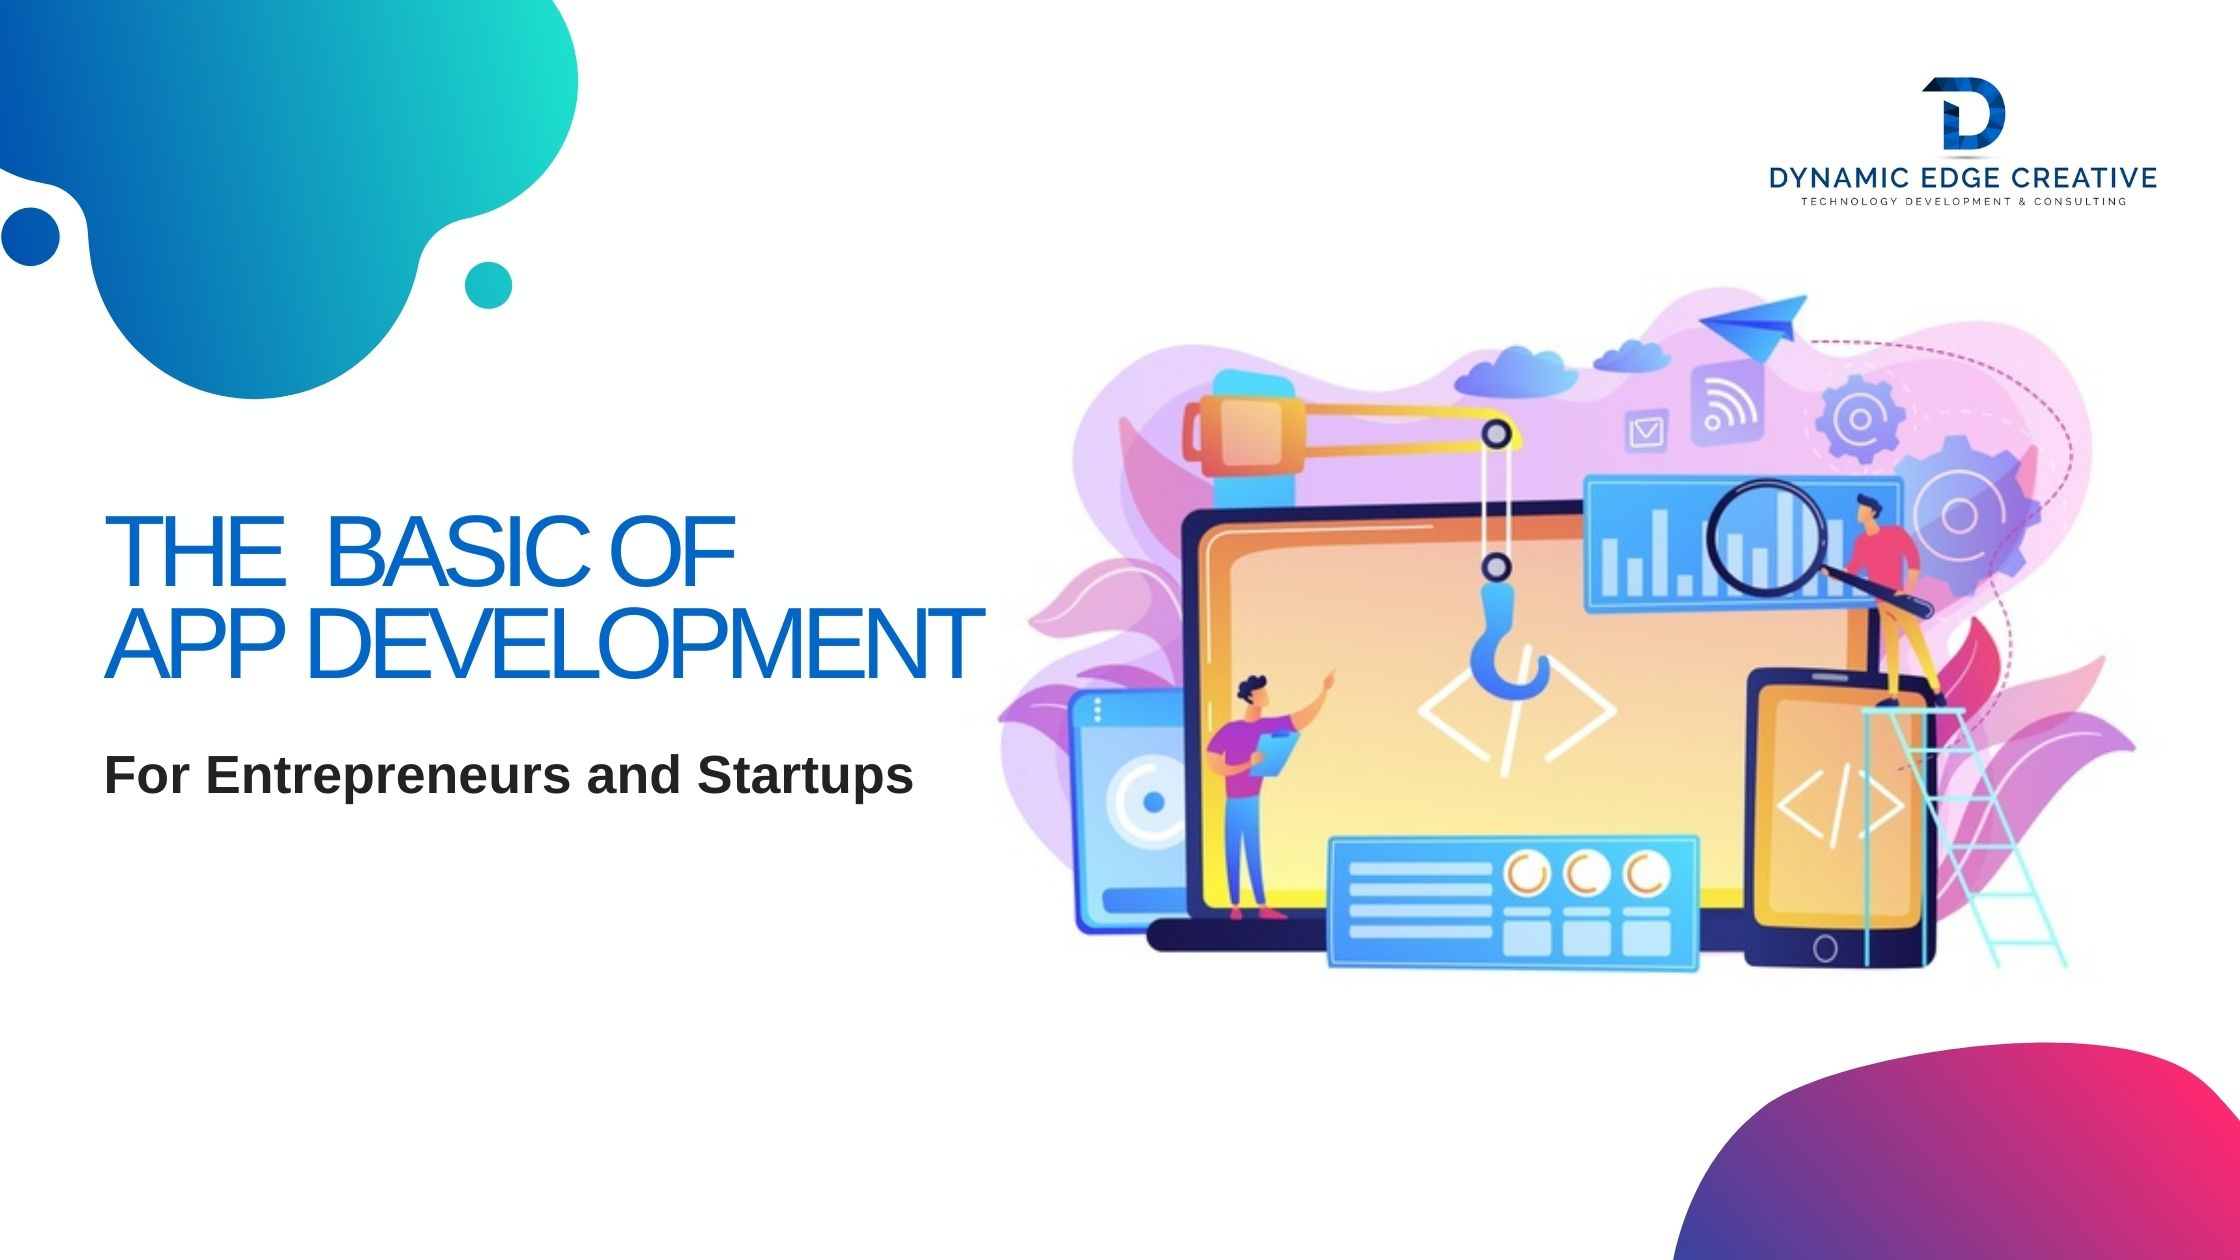 Know About The Basics of App Development